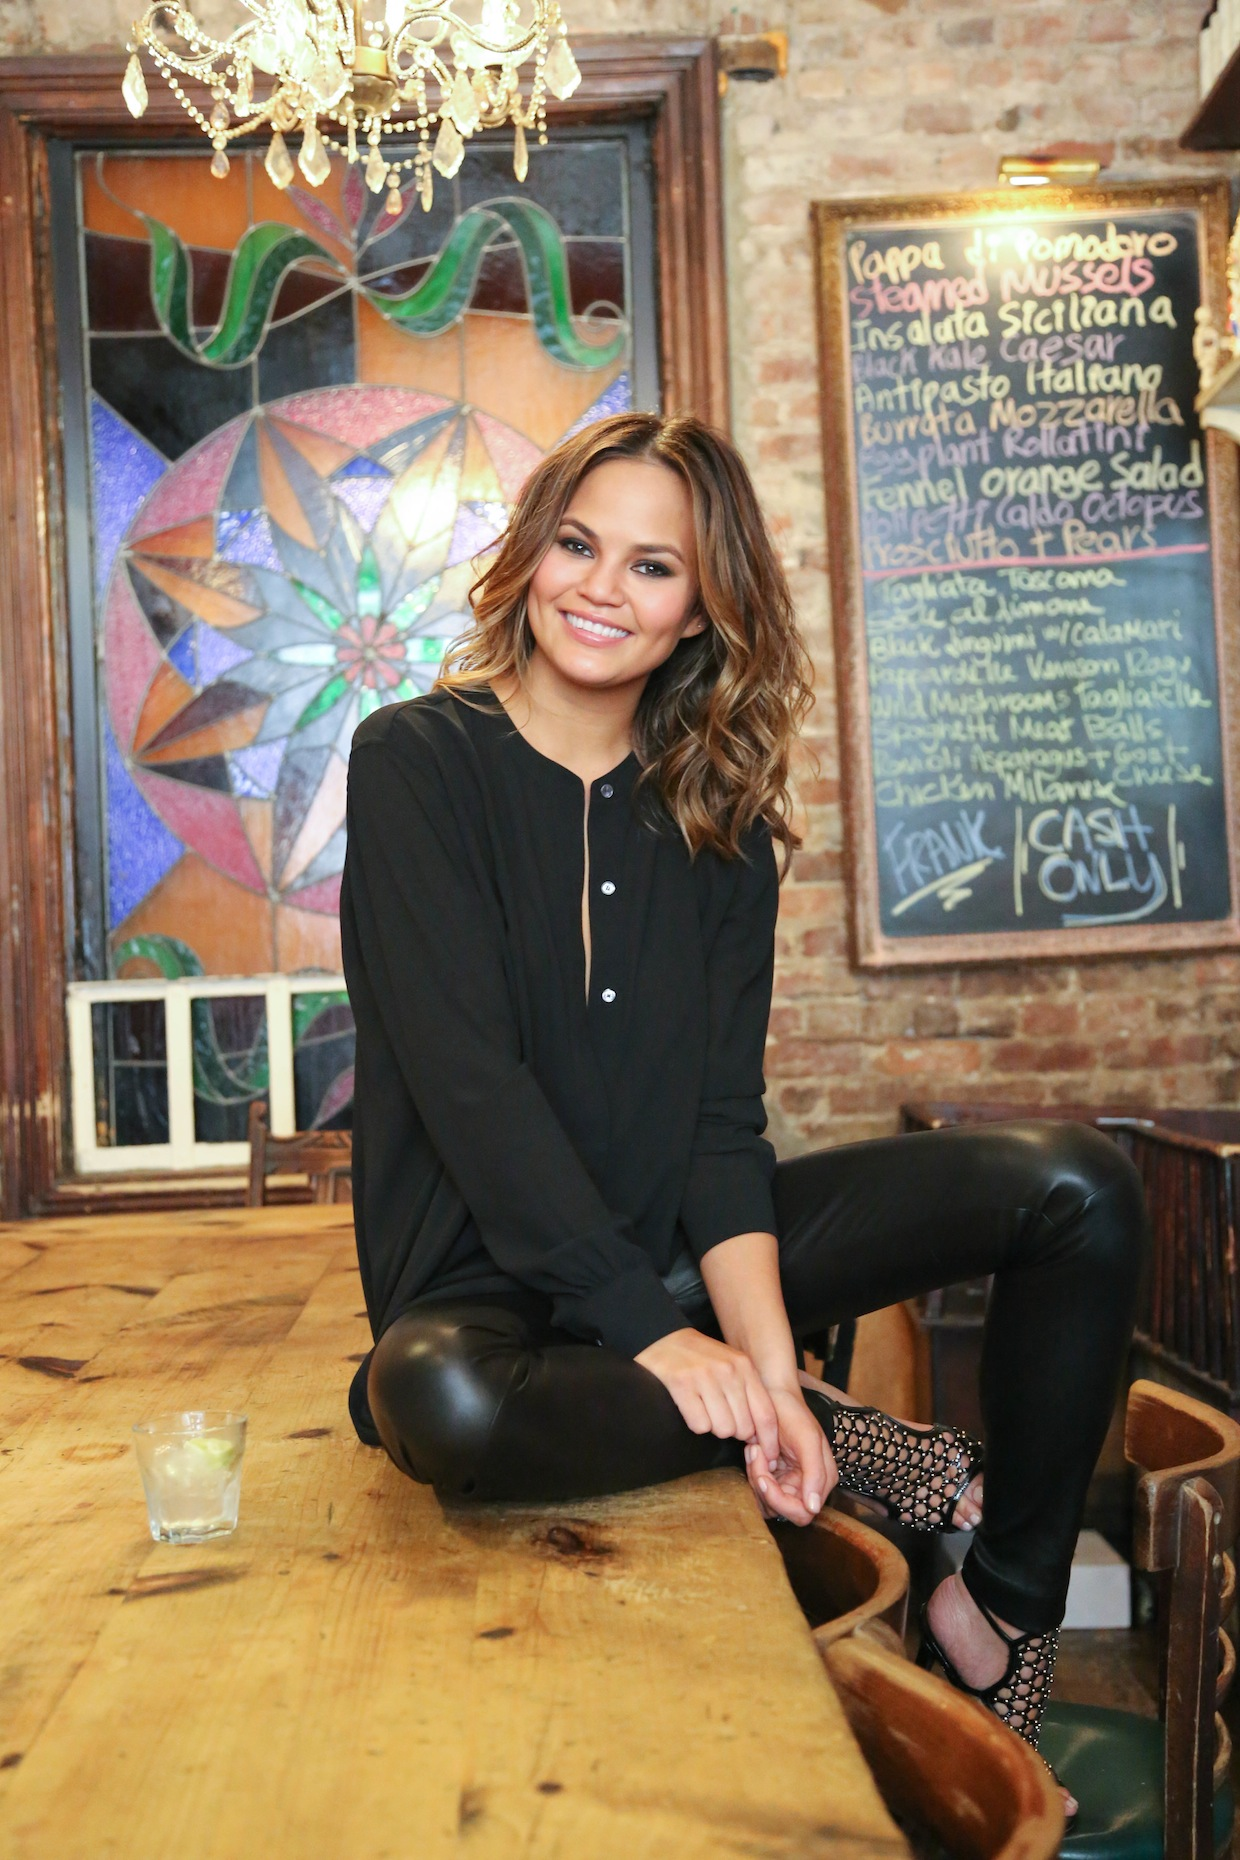 CHRISSY-TEIGEN-THENEWPOTATO-4